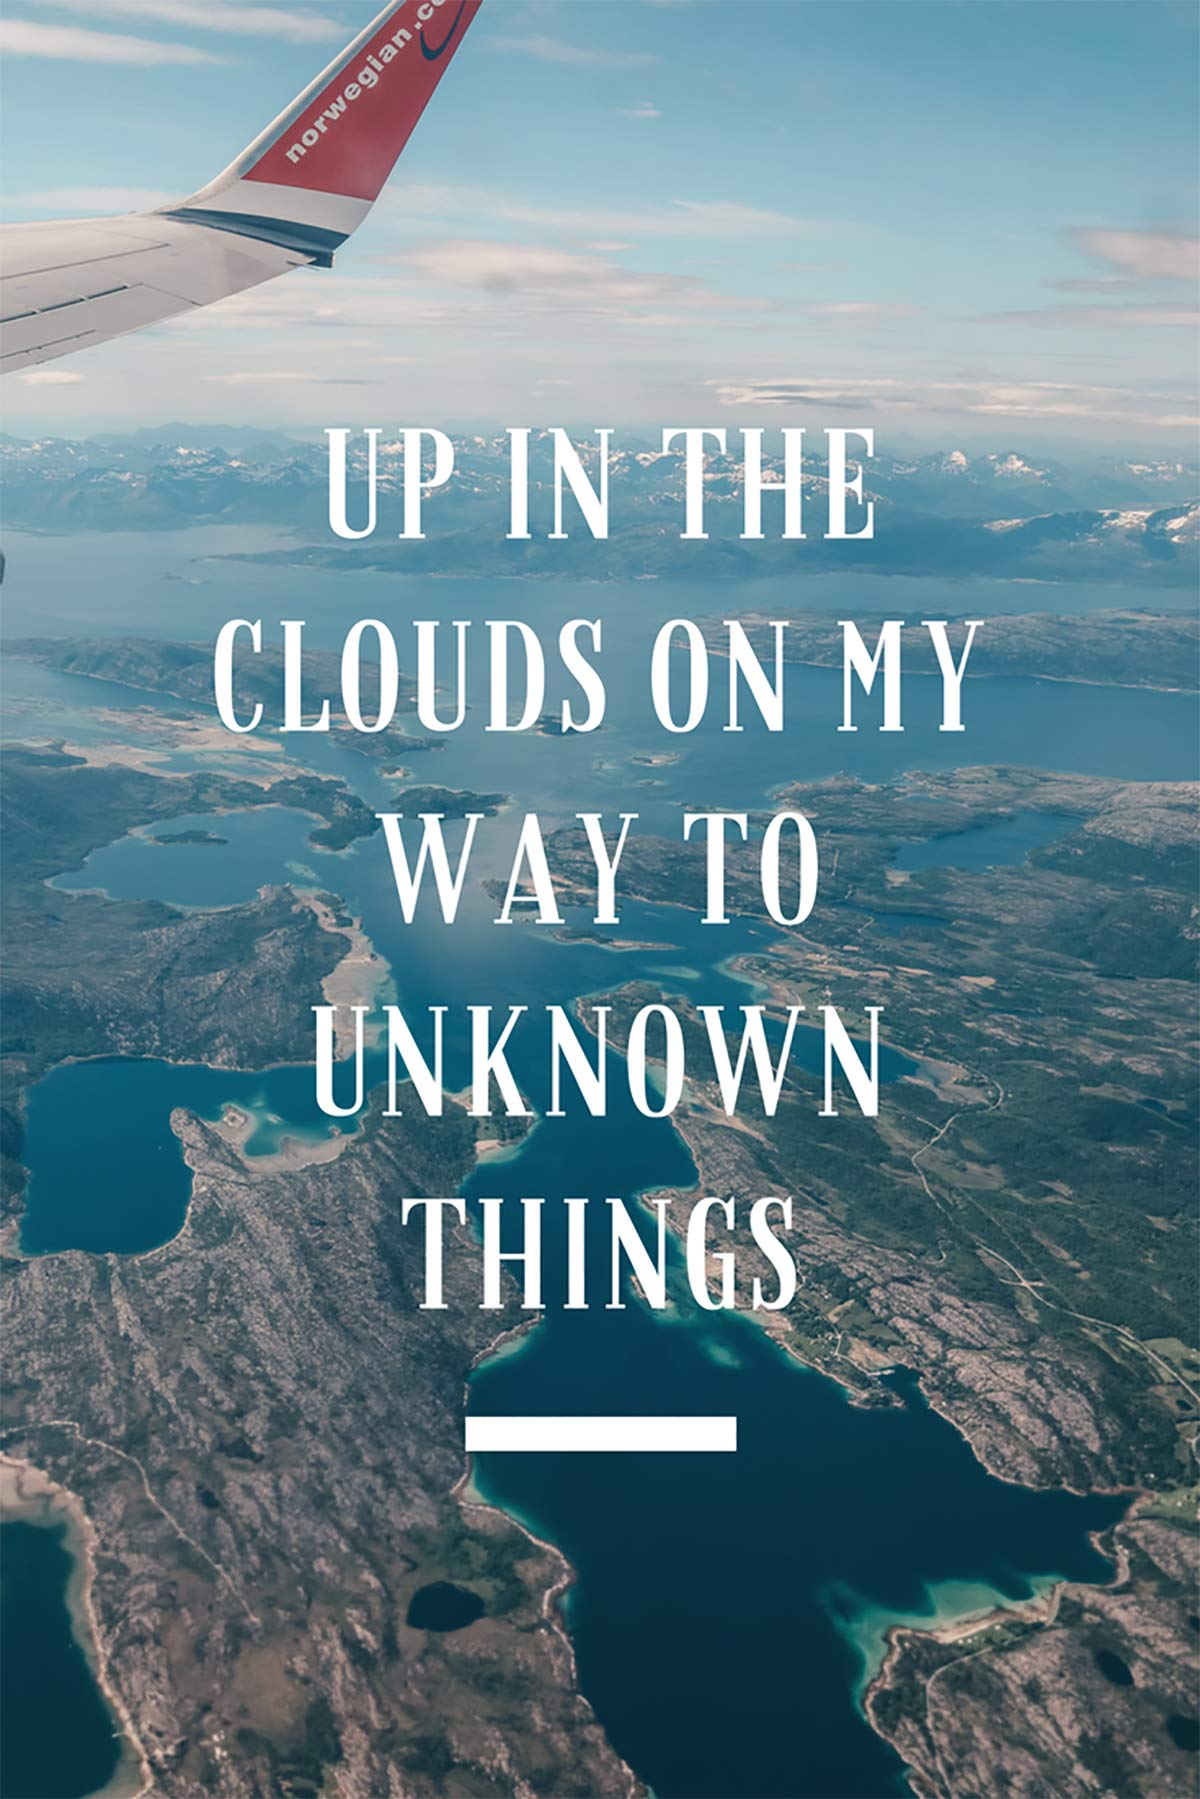 Up in the clouds on my way to unknown things